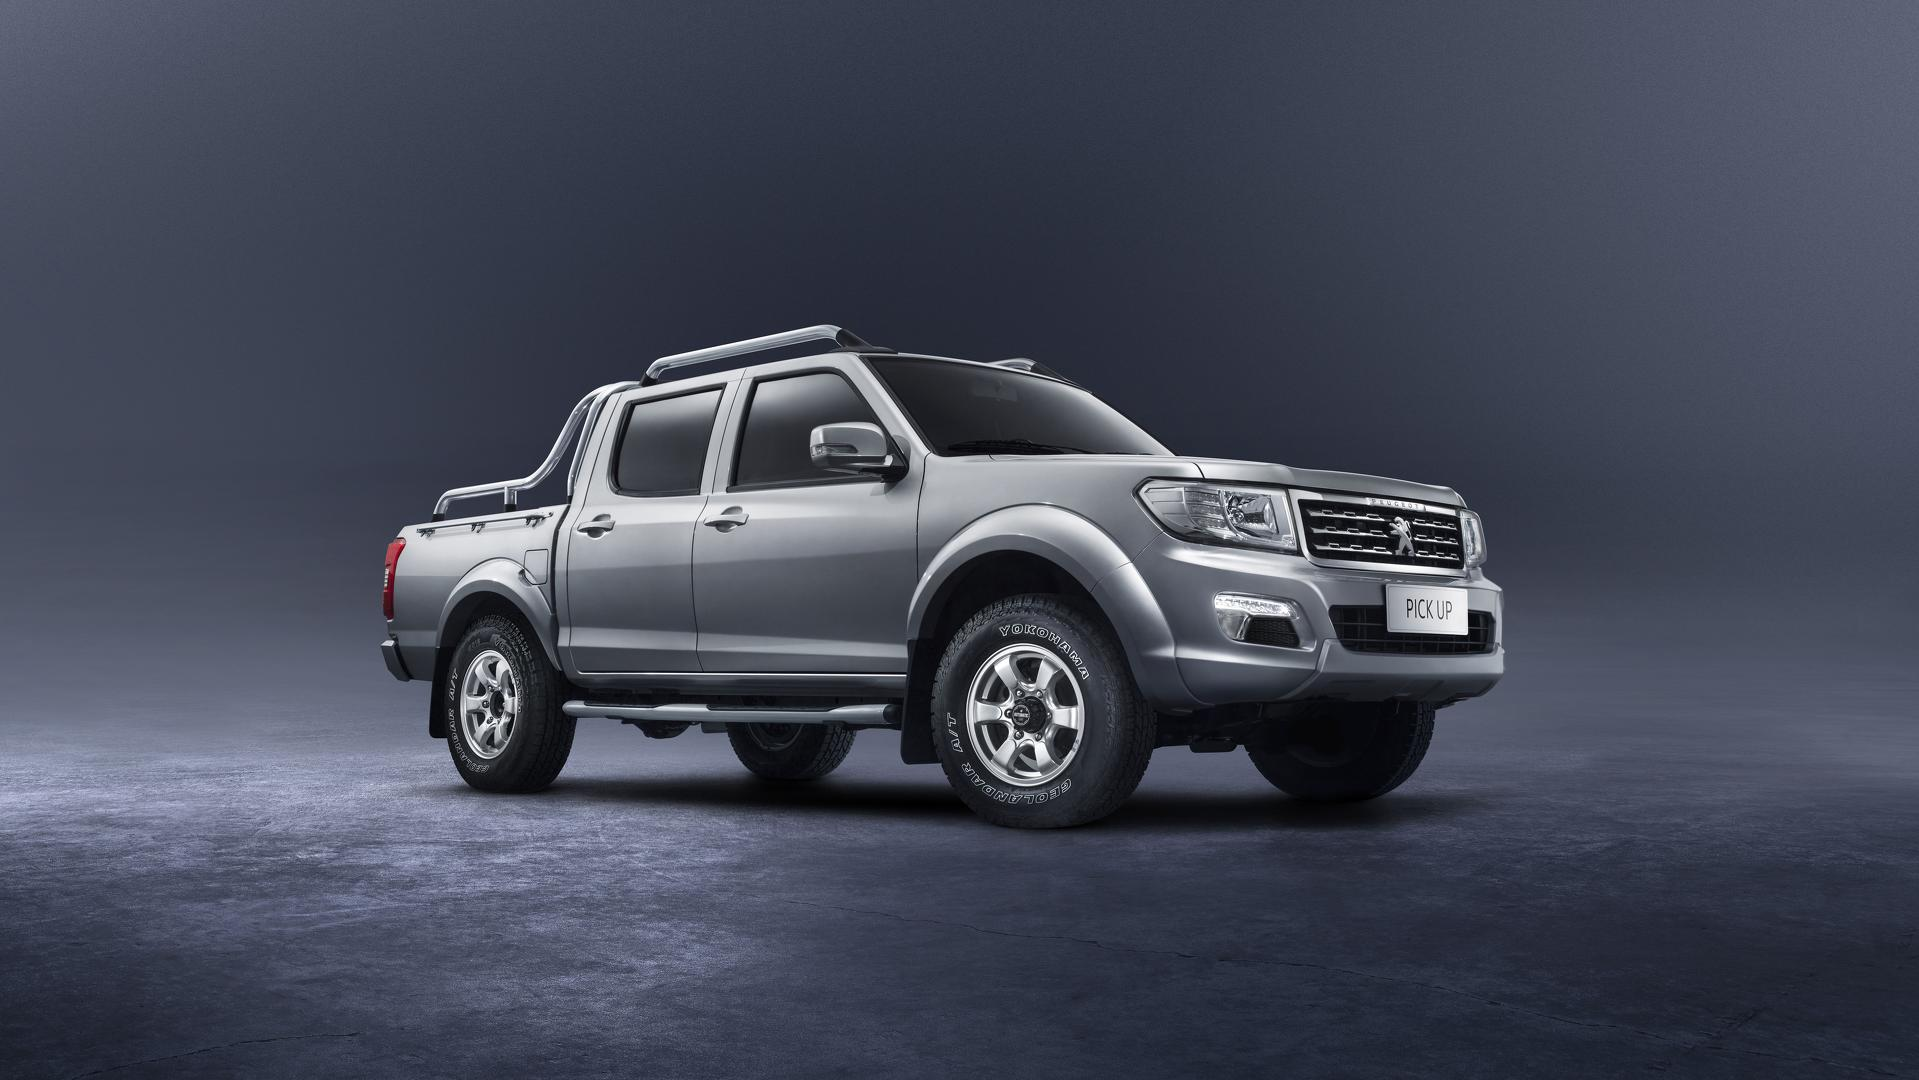 Peugeot Back In The Pickup Truck Game With The New… \'Pick Up\'